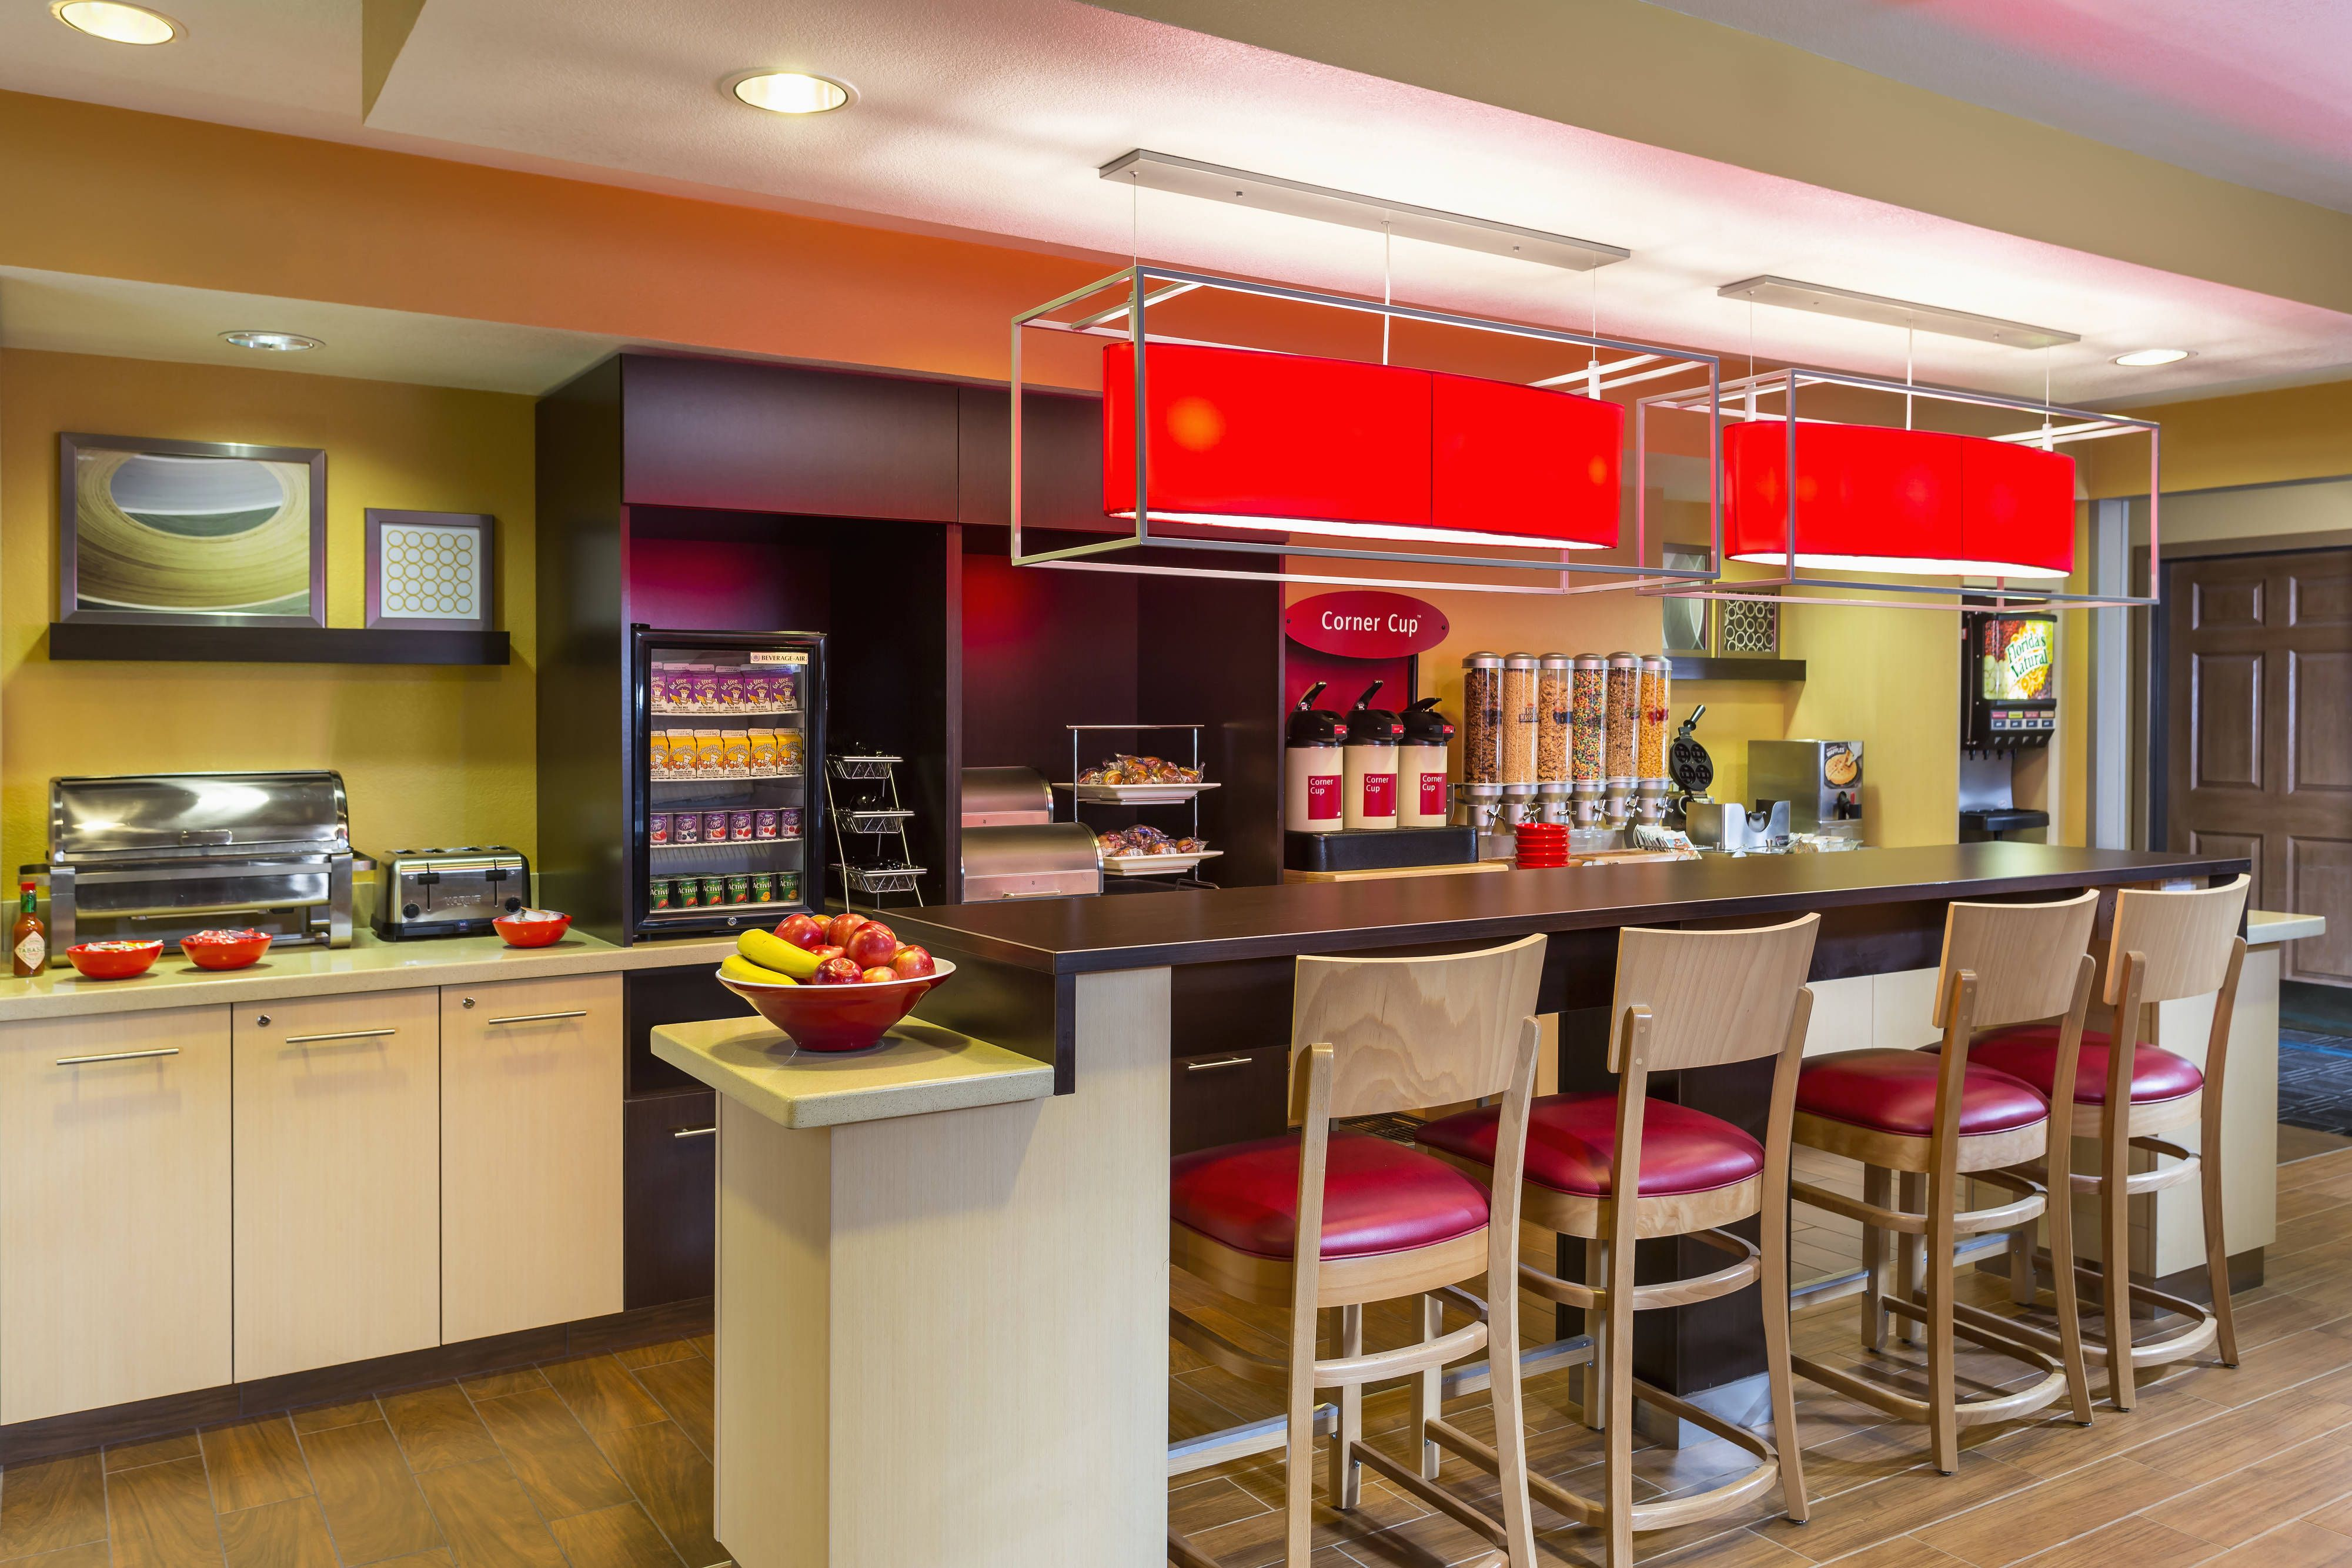 Towneplace Suites Phoenix North Breakfast Area Holiday Guest Travel Suites Hotel Amenities Breakfast Area